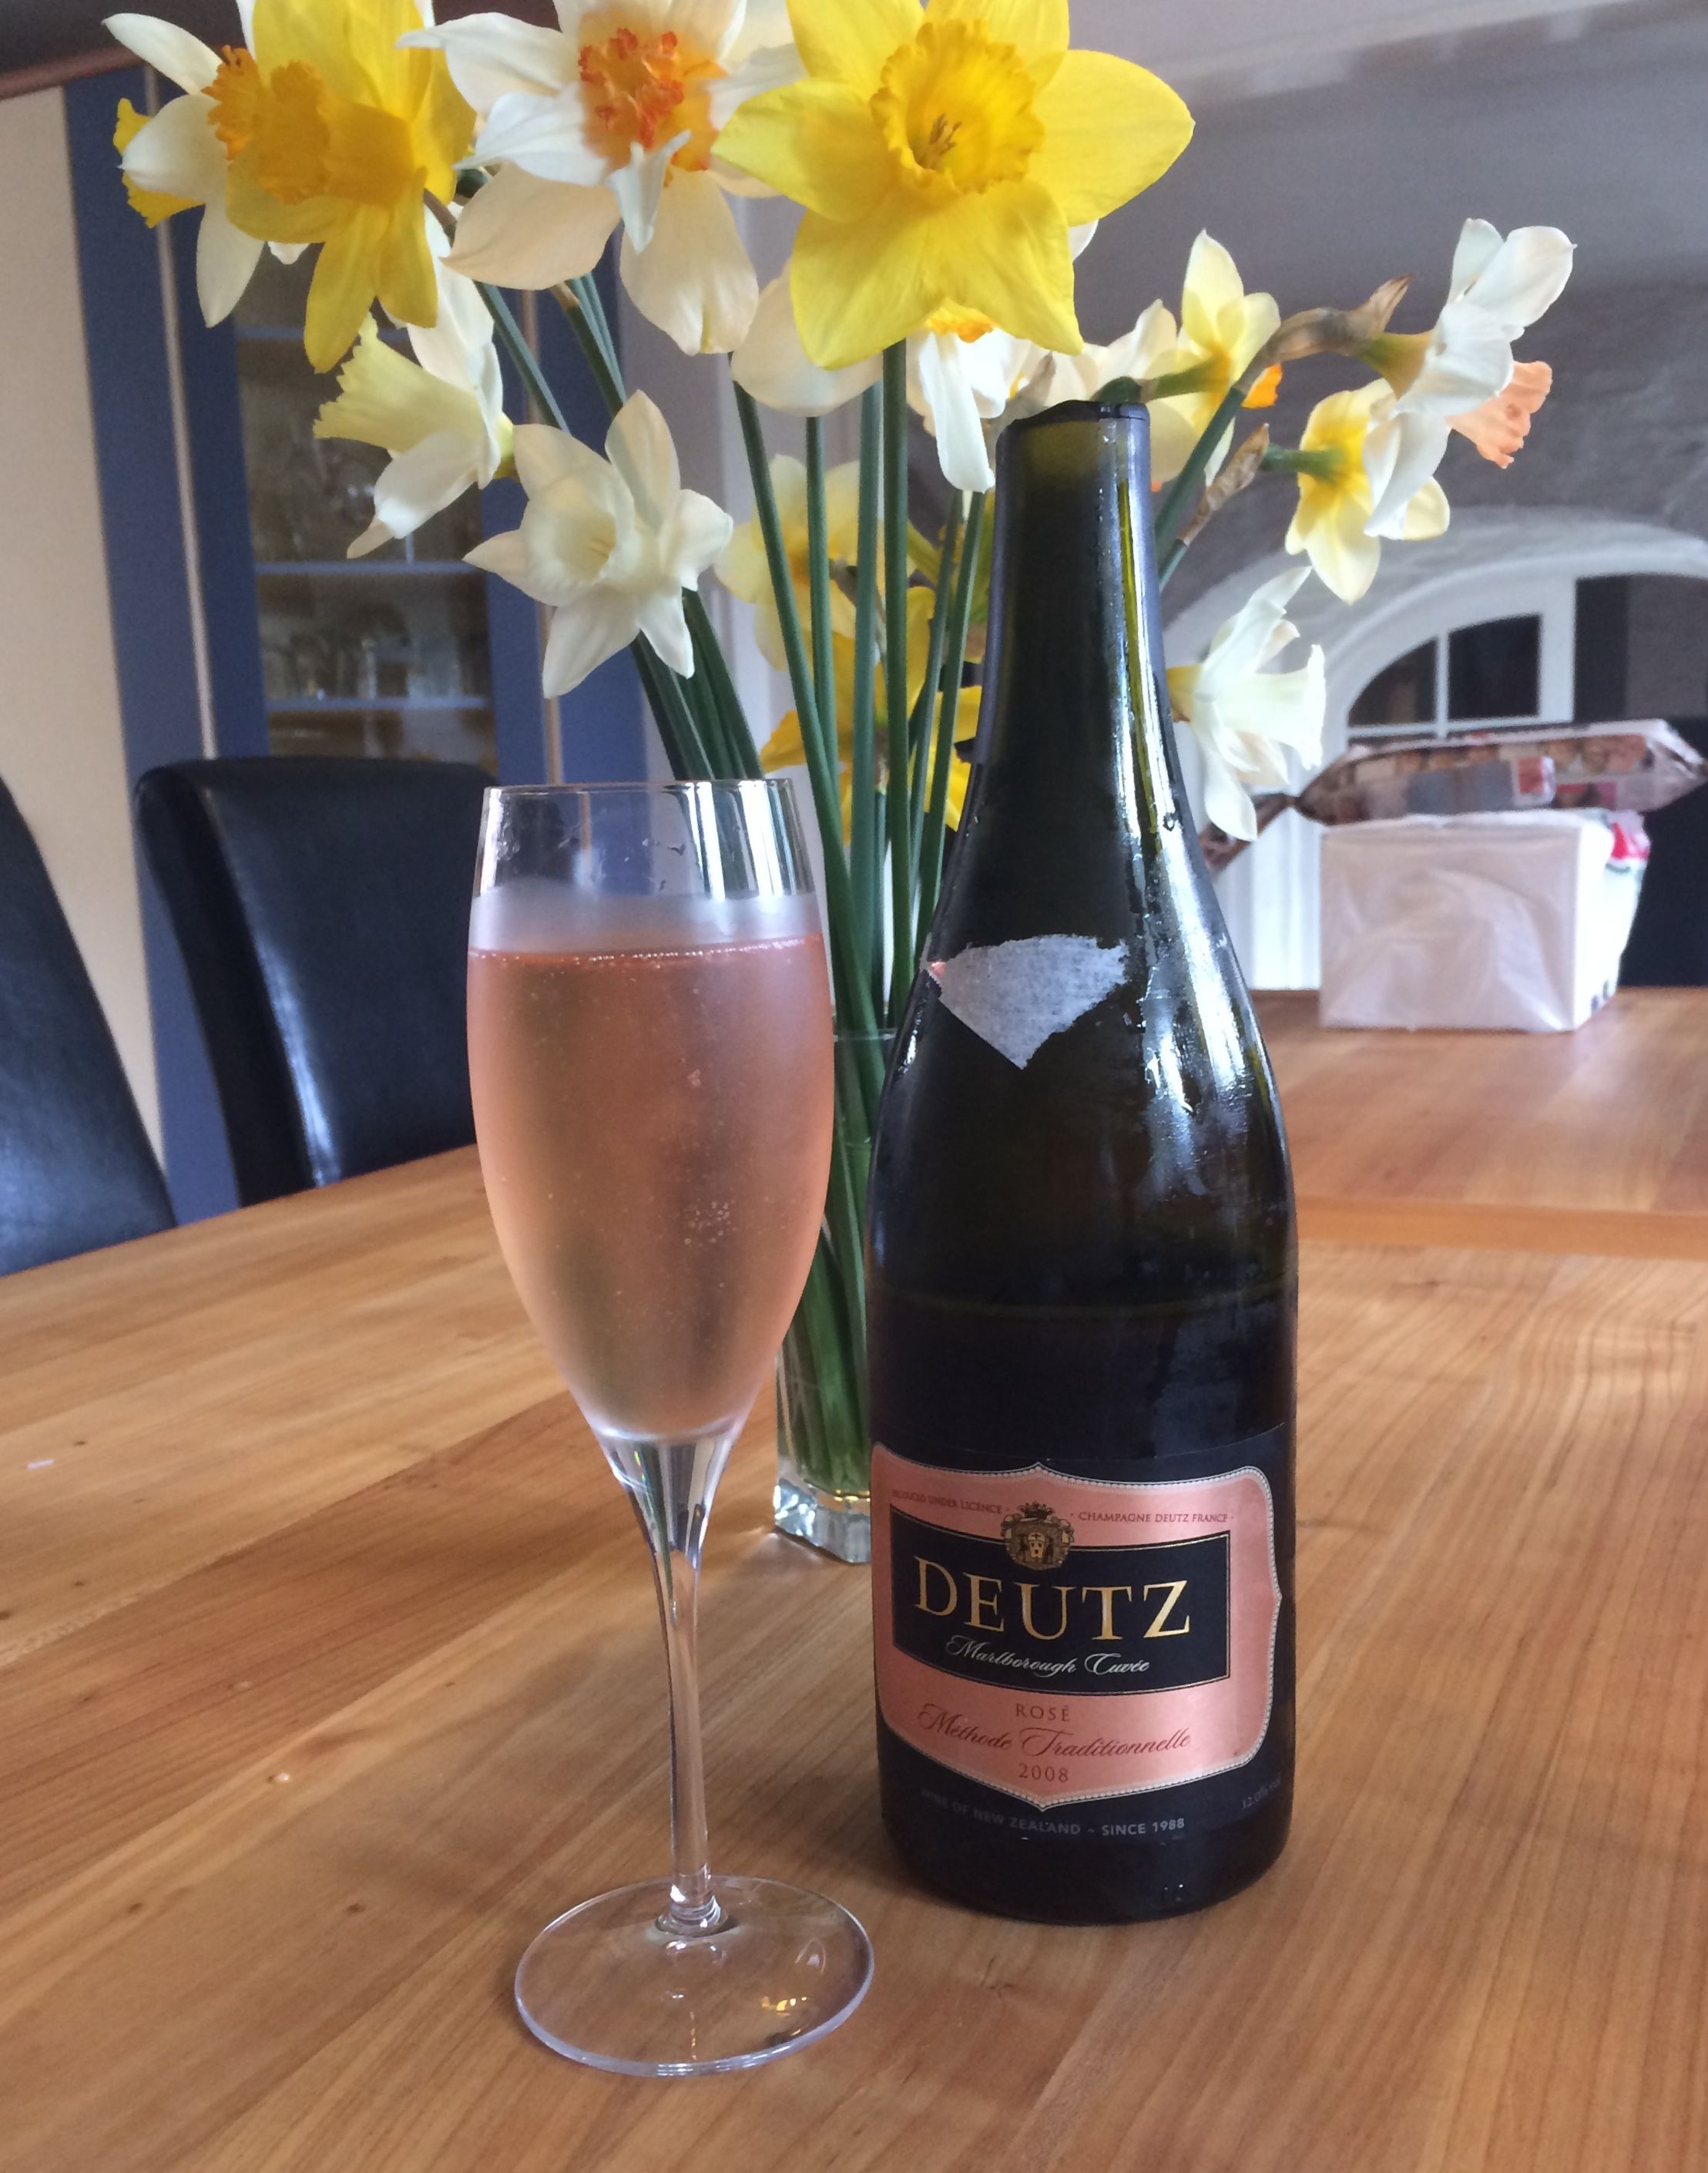 Freshly sabered bottle of Duetz Methode Champenois.